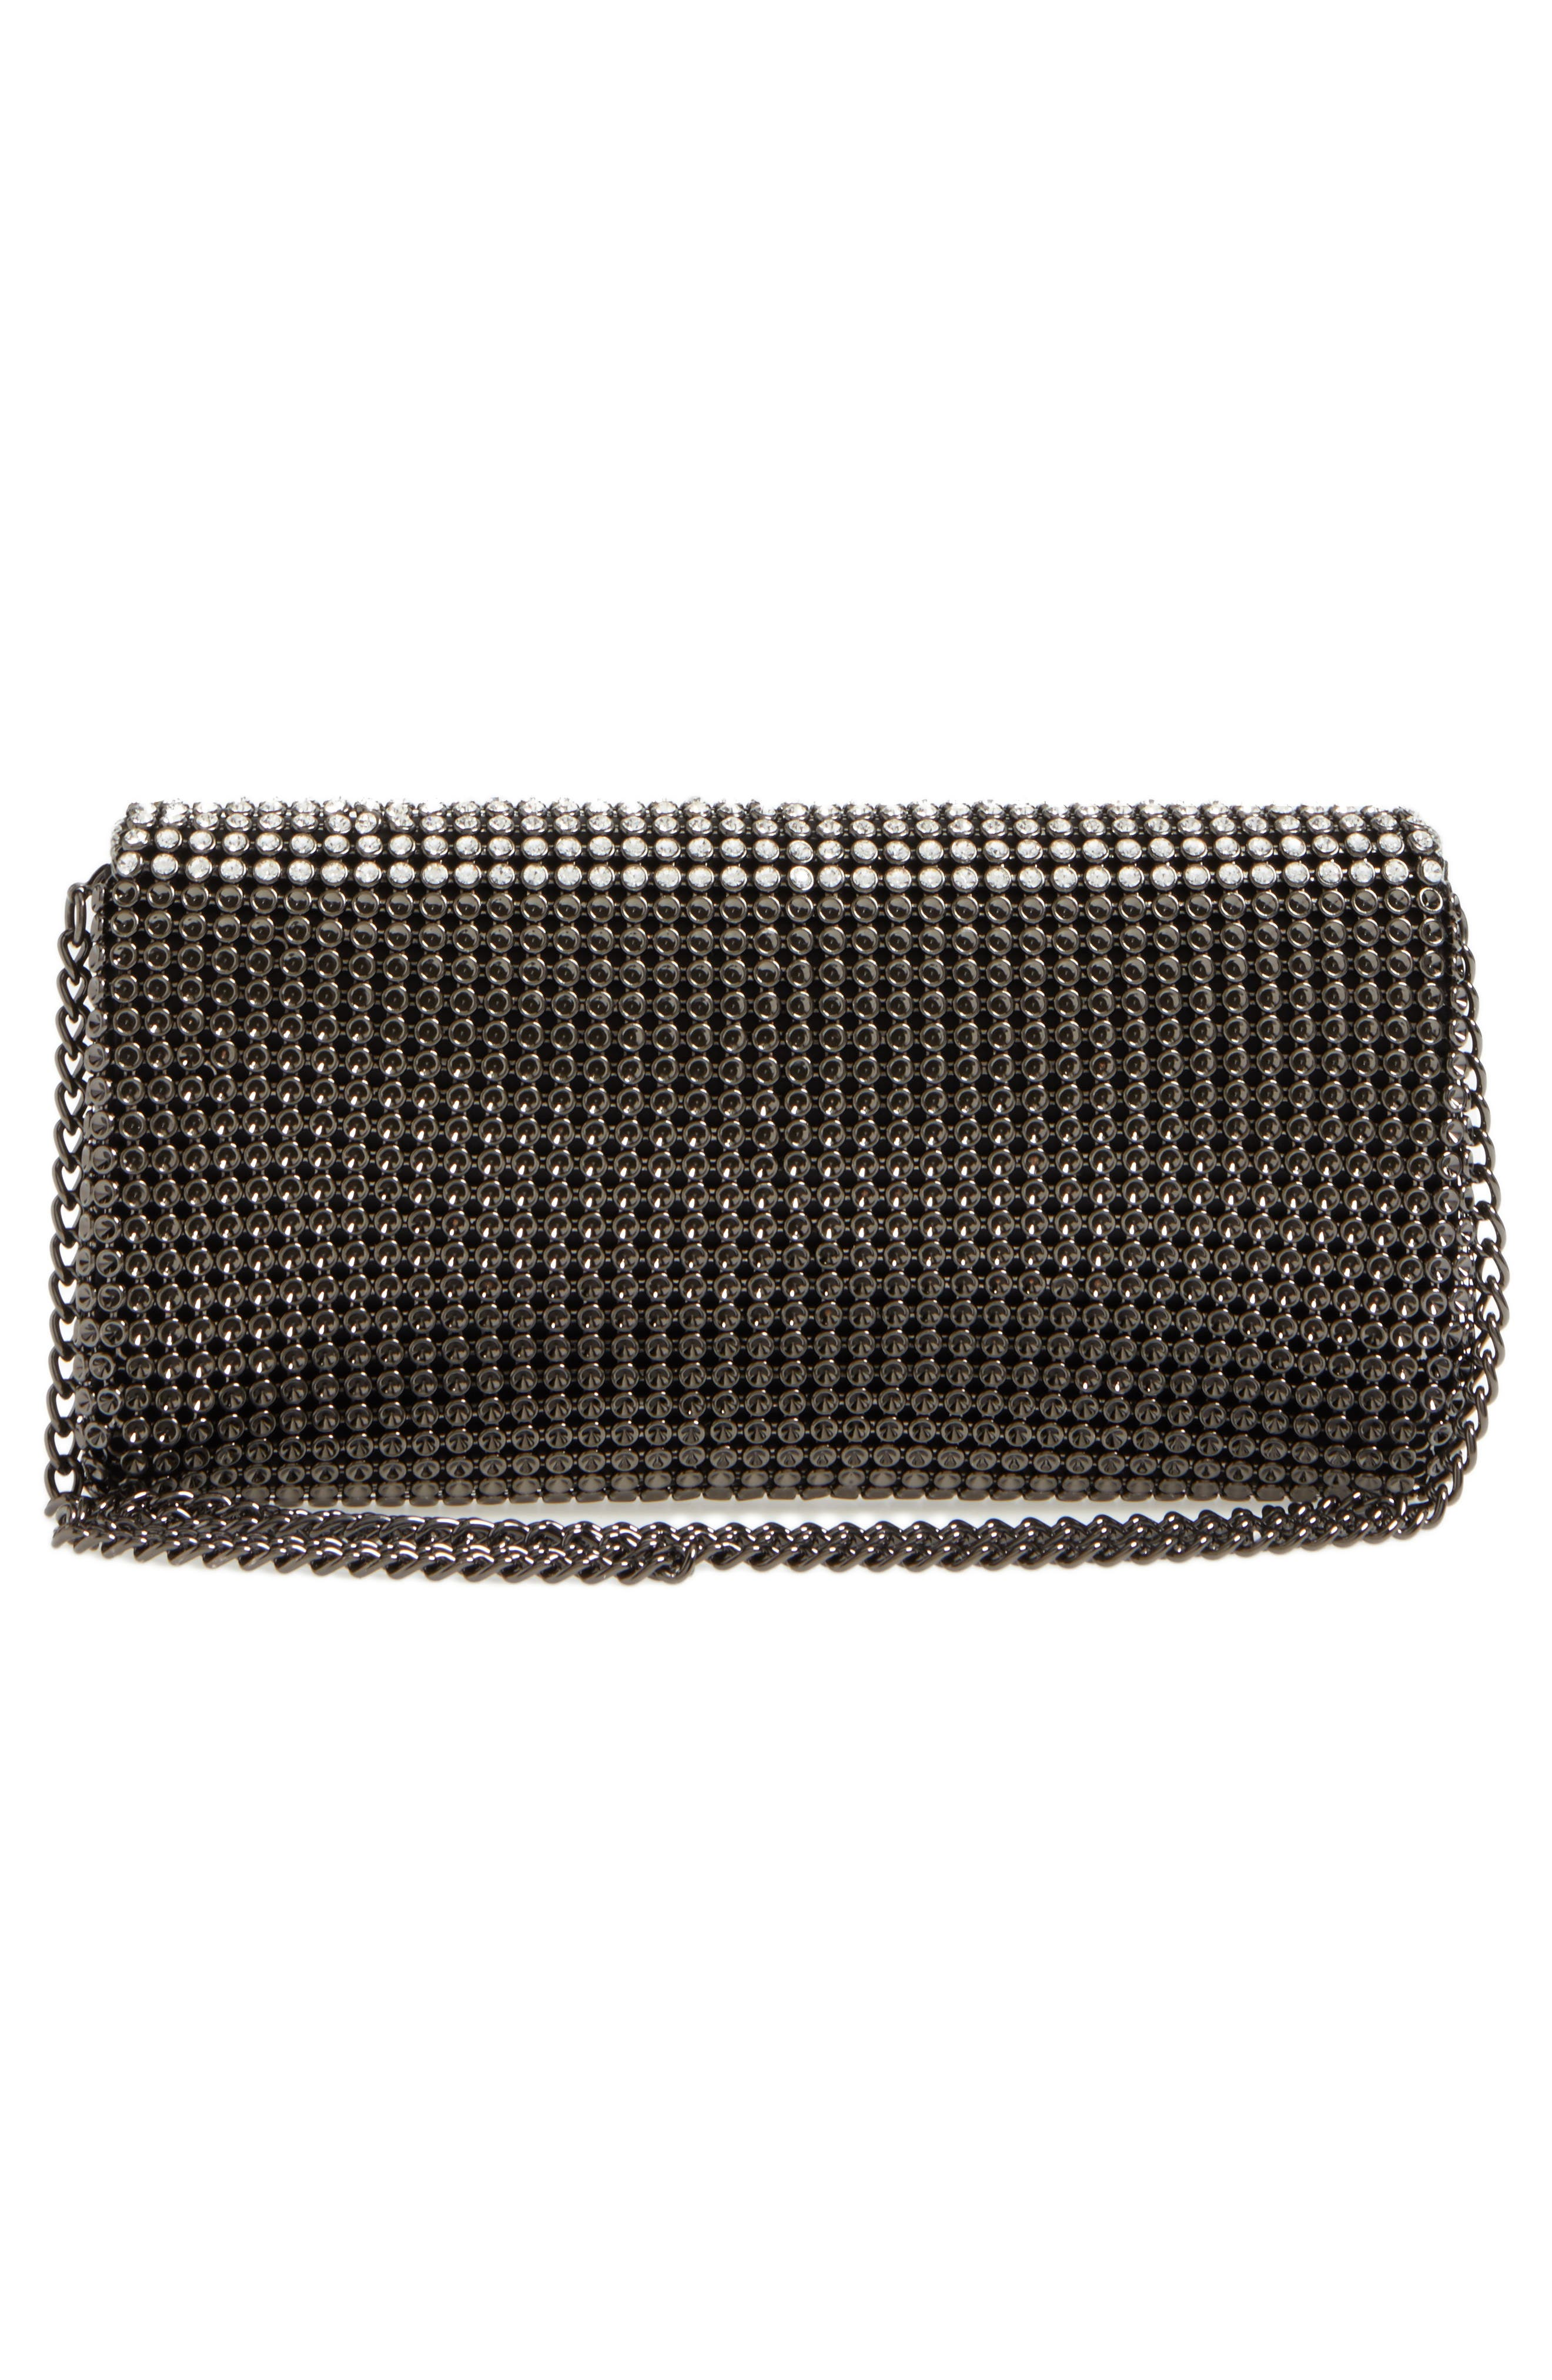 Crystal Triangle Clutch,                             Alternate thumbnail 3, color,                             041